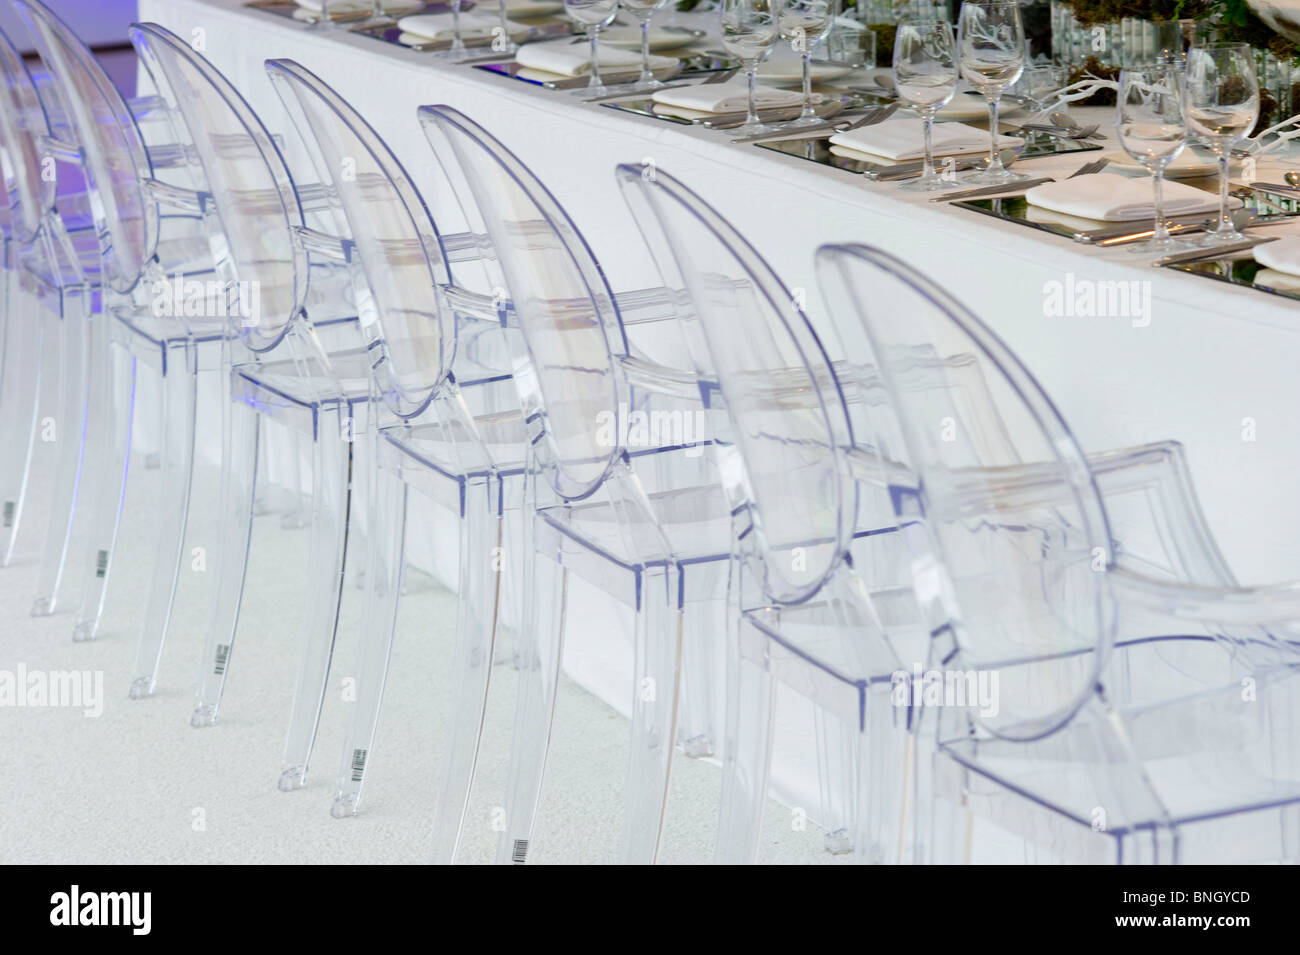 Lucite chairs at dinner party set up - Stock Image